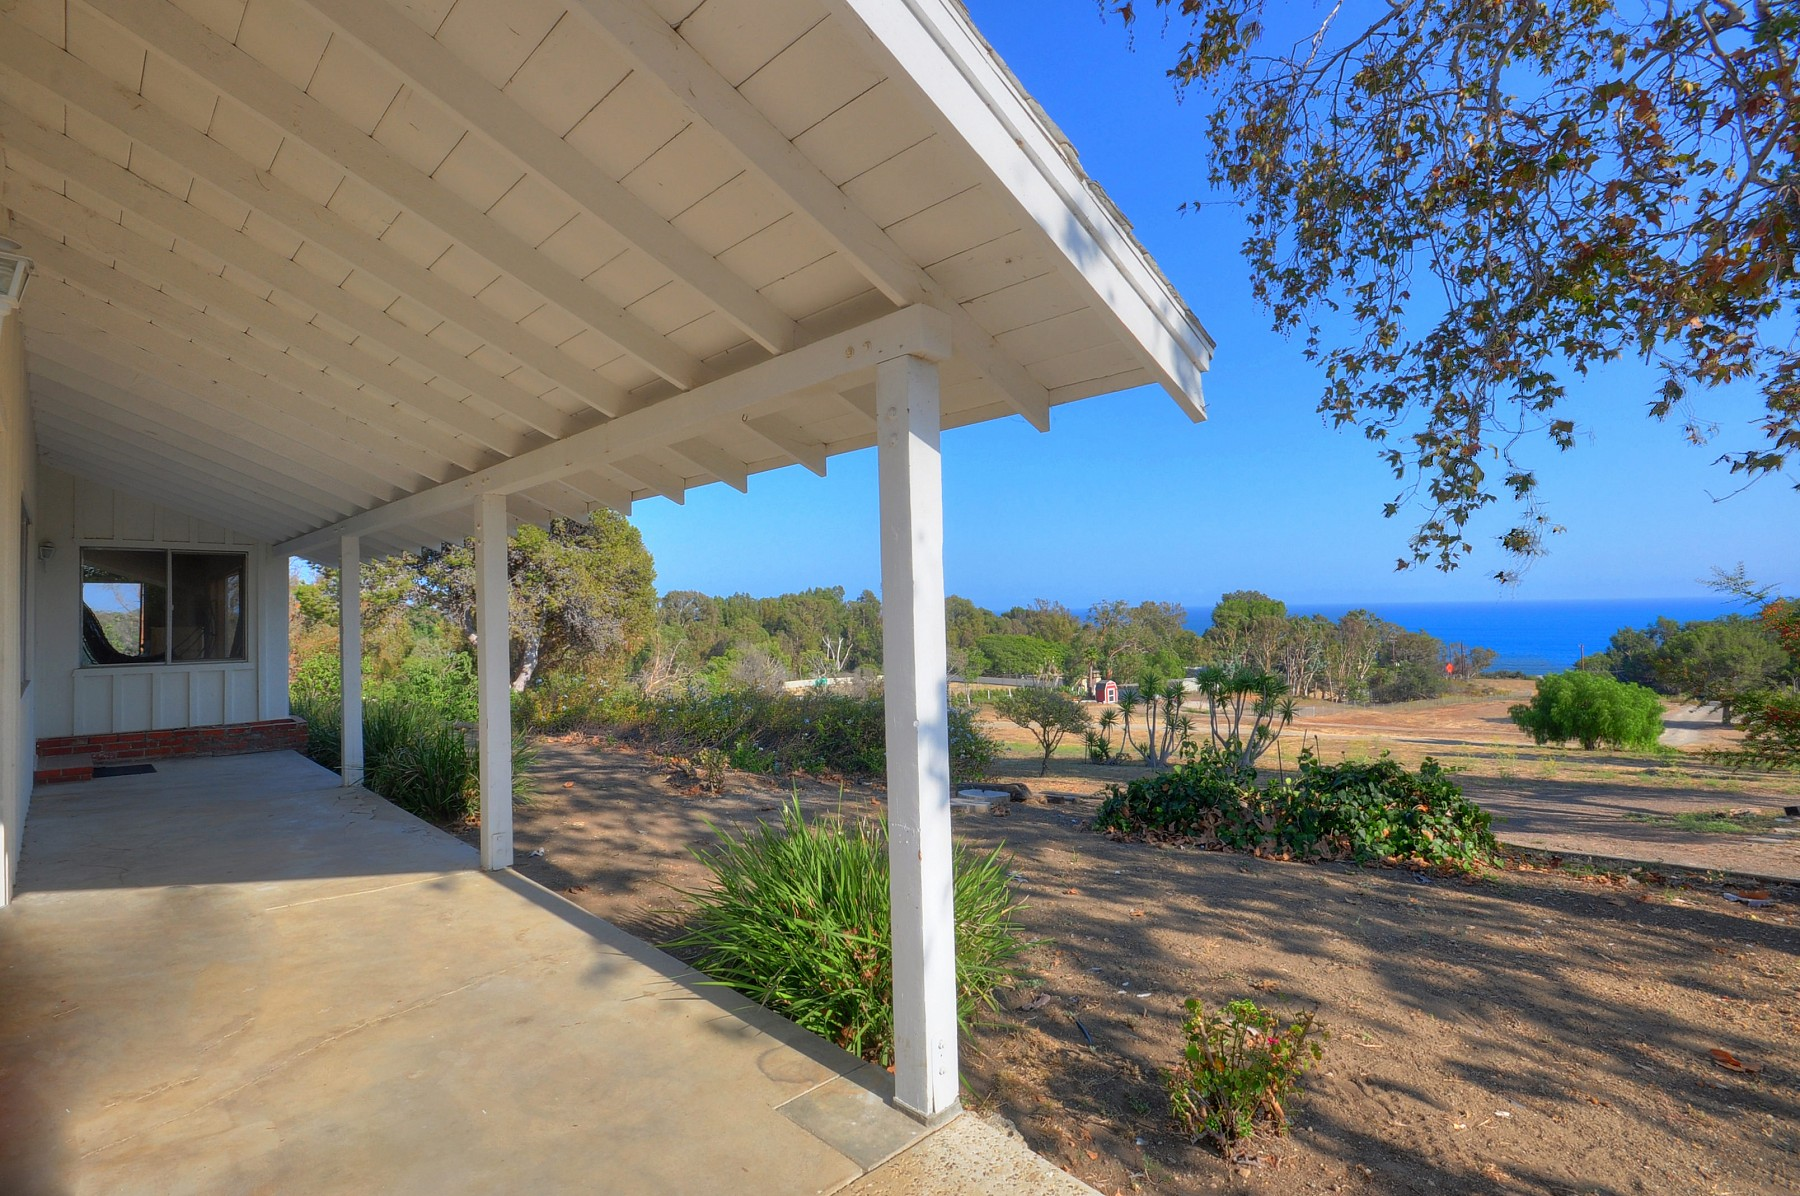 27535 Pacific Coast Highway, Malibu, CA 90265